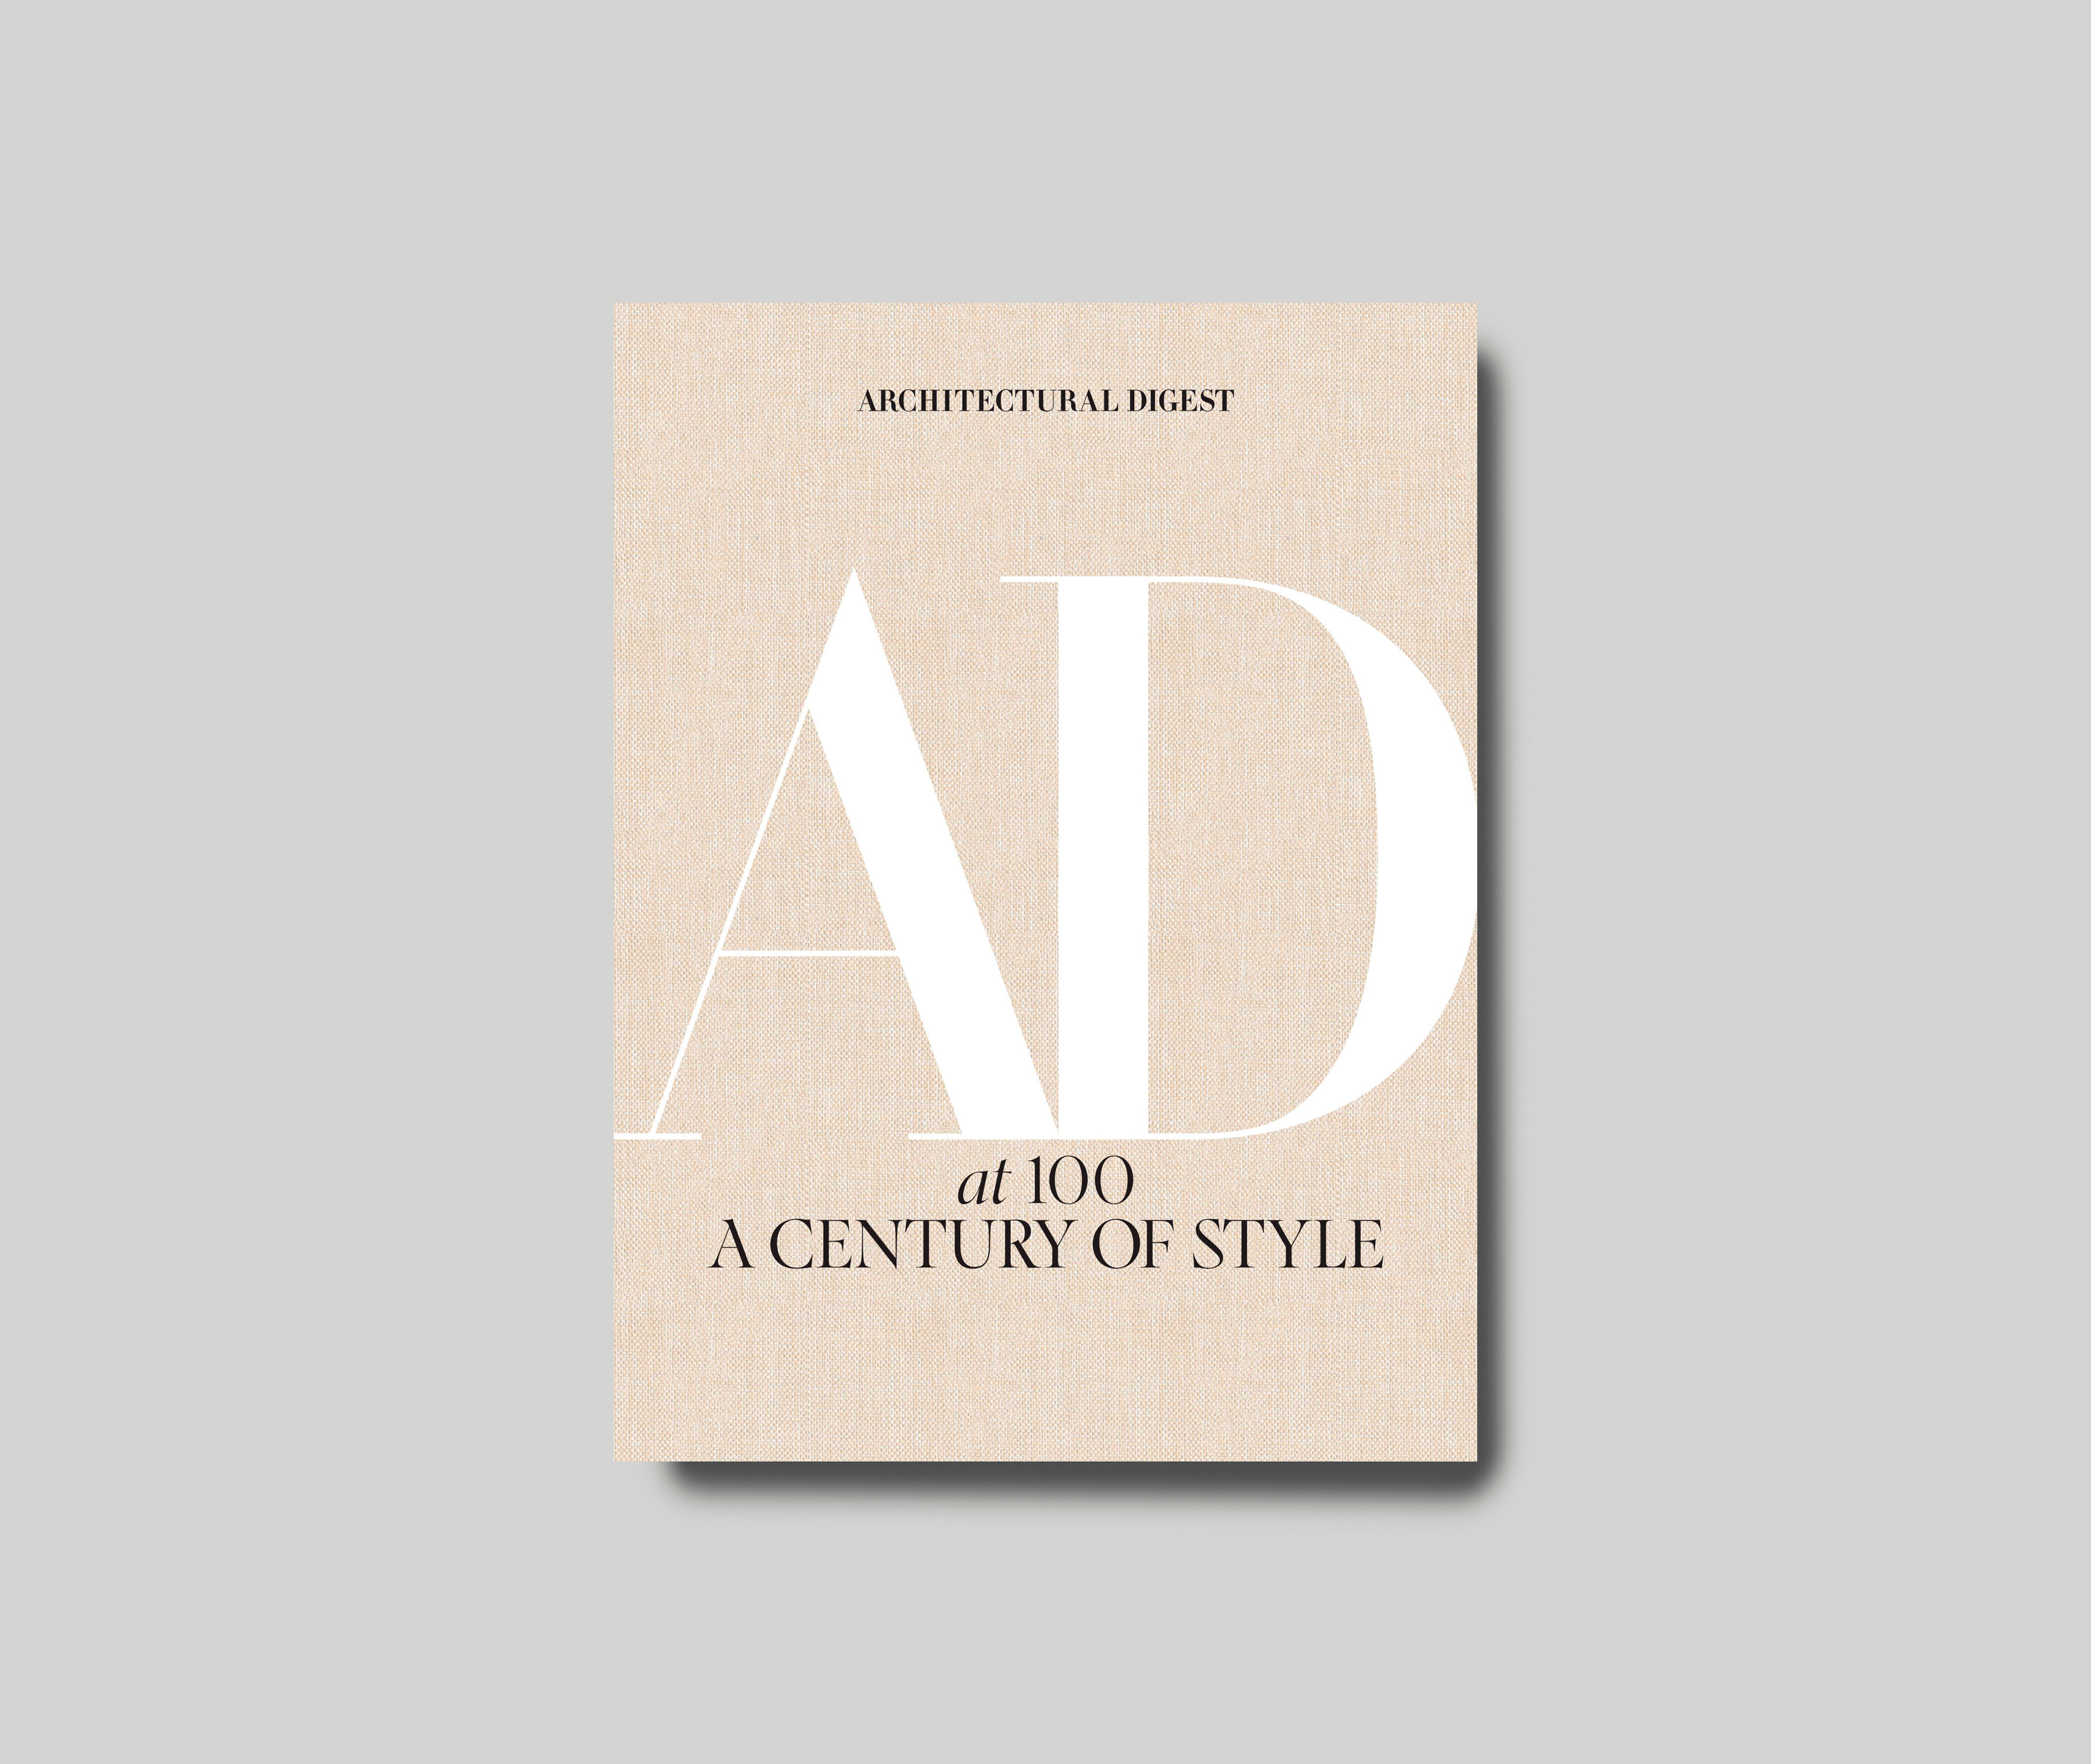 Architectural Digest at 100: A Century of Style | newmags